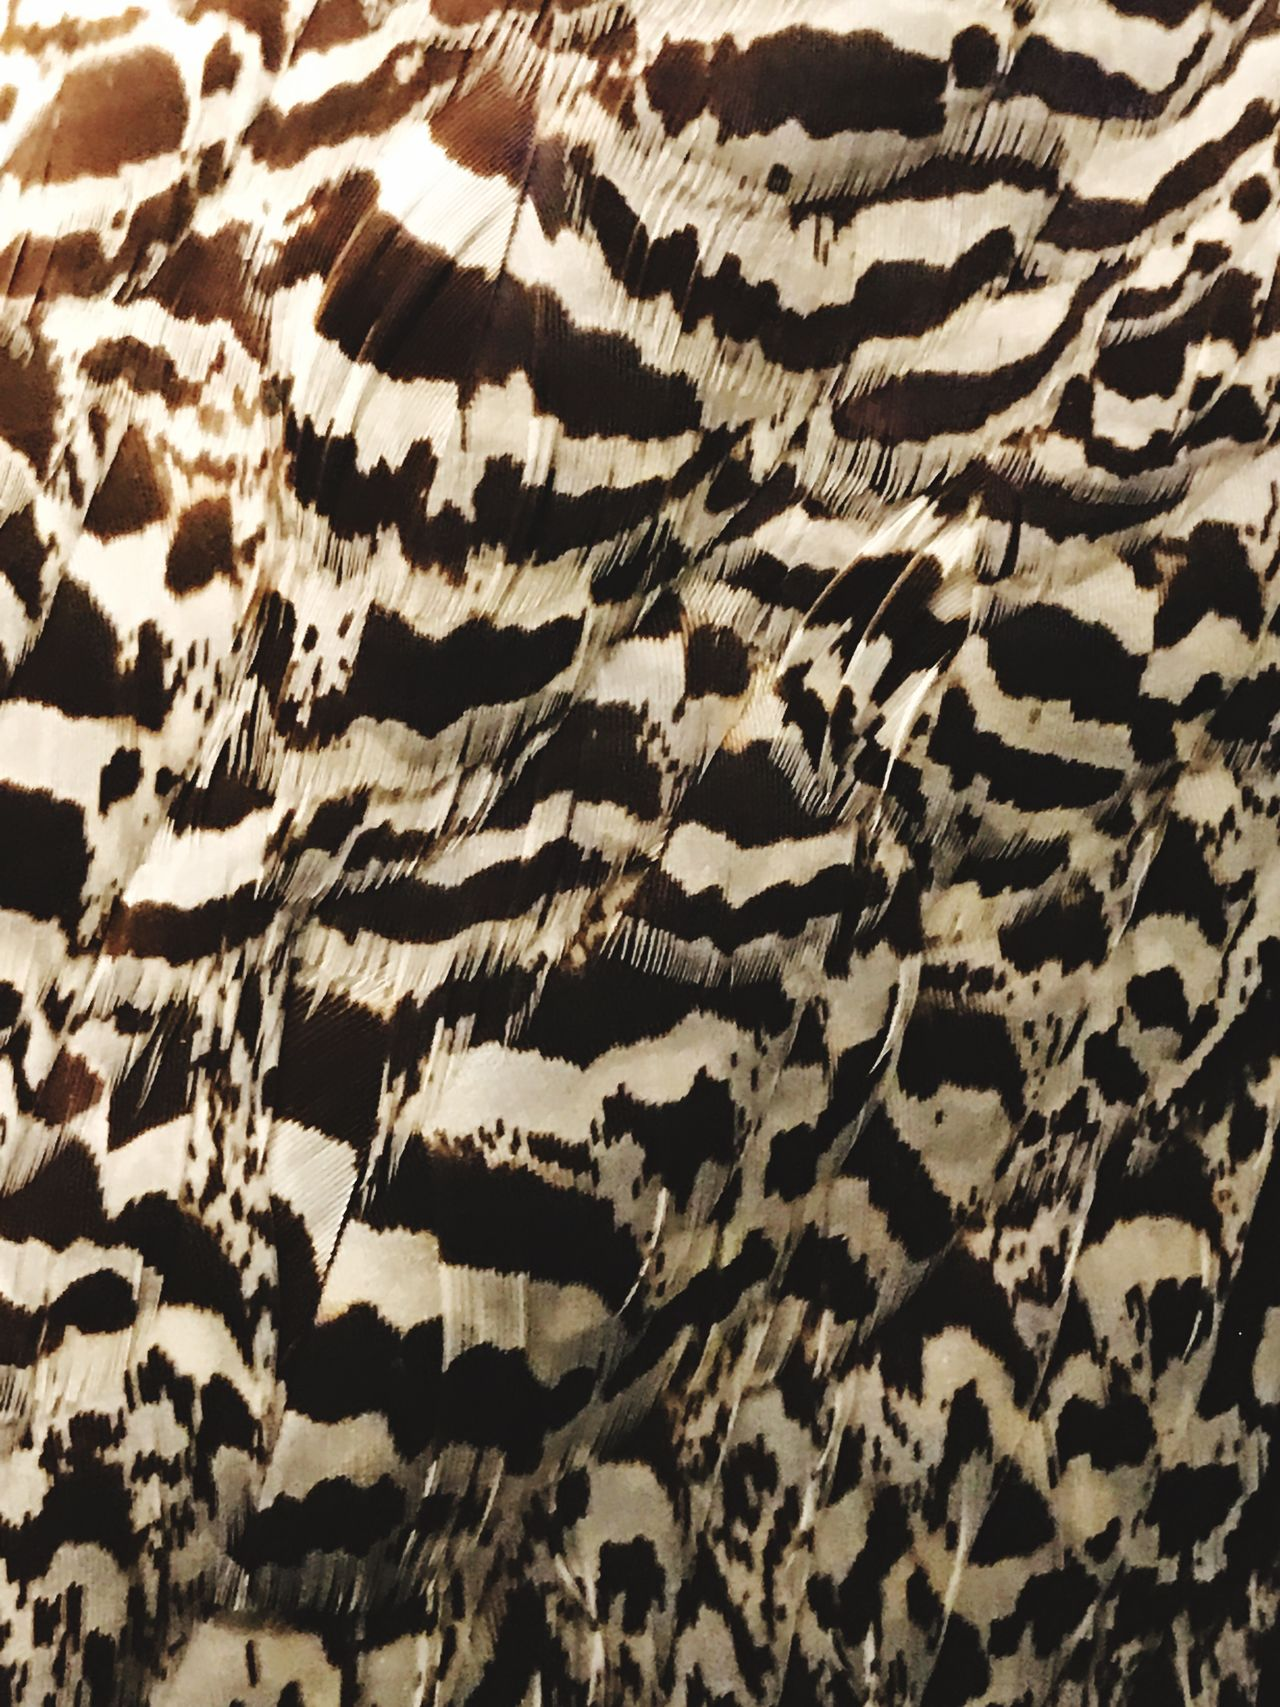 Pattern Textile Backgrounds Textured  Striped Abstract Black Color Material Full Frame No People Nature Close-up Mammal Day